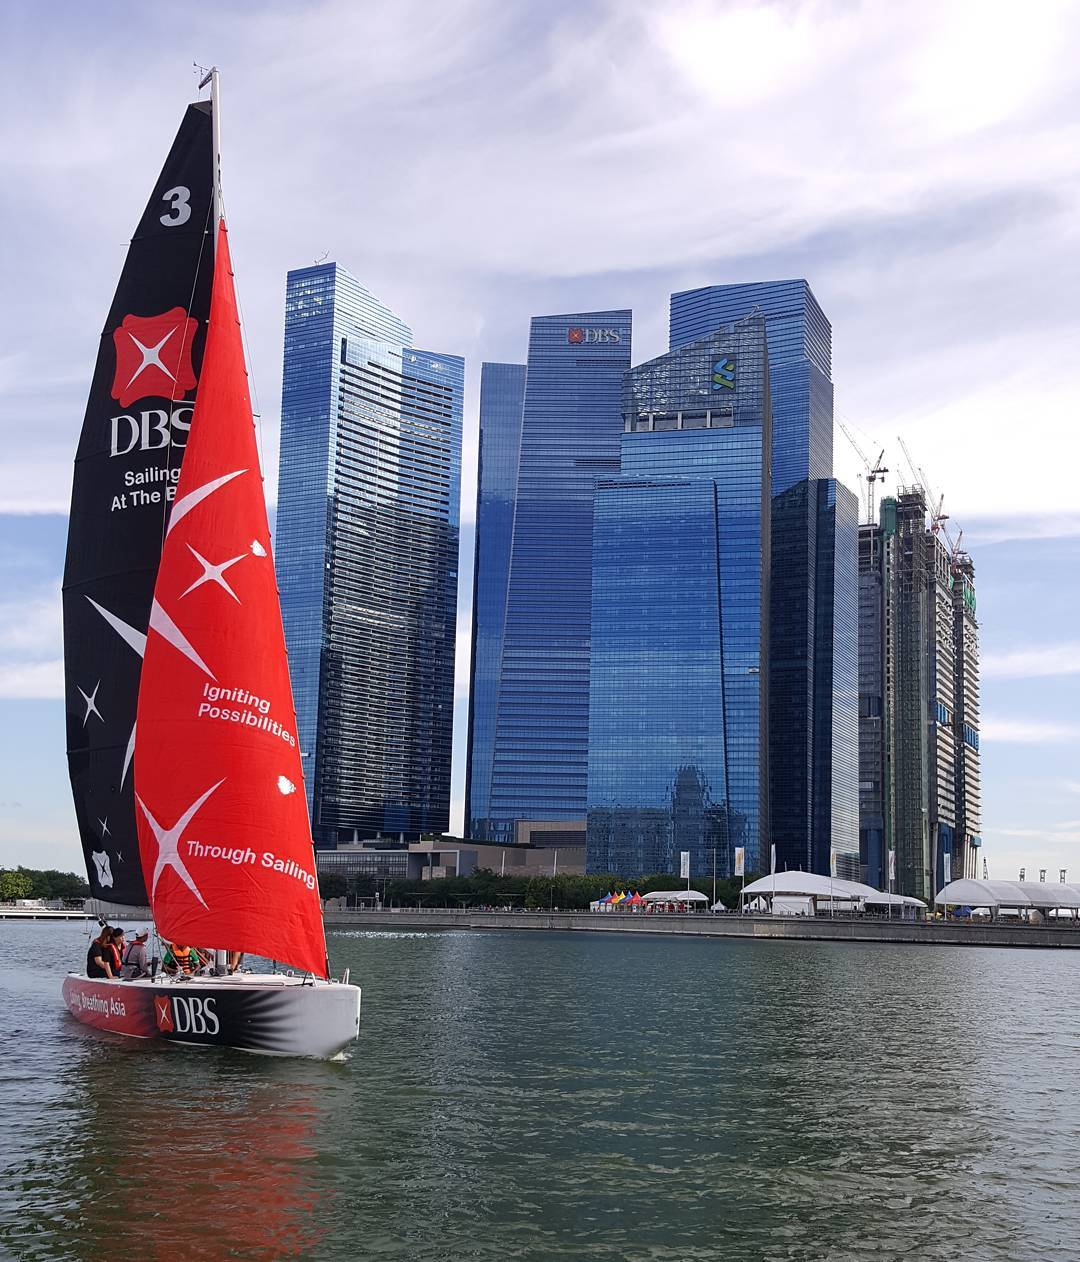 DBS Marina Regatta - sailing programme around Marina Bay